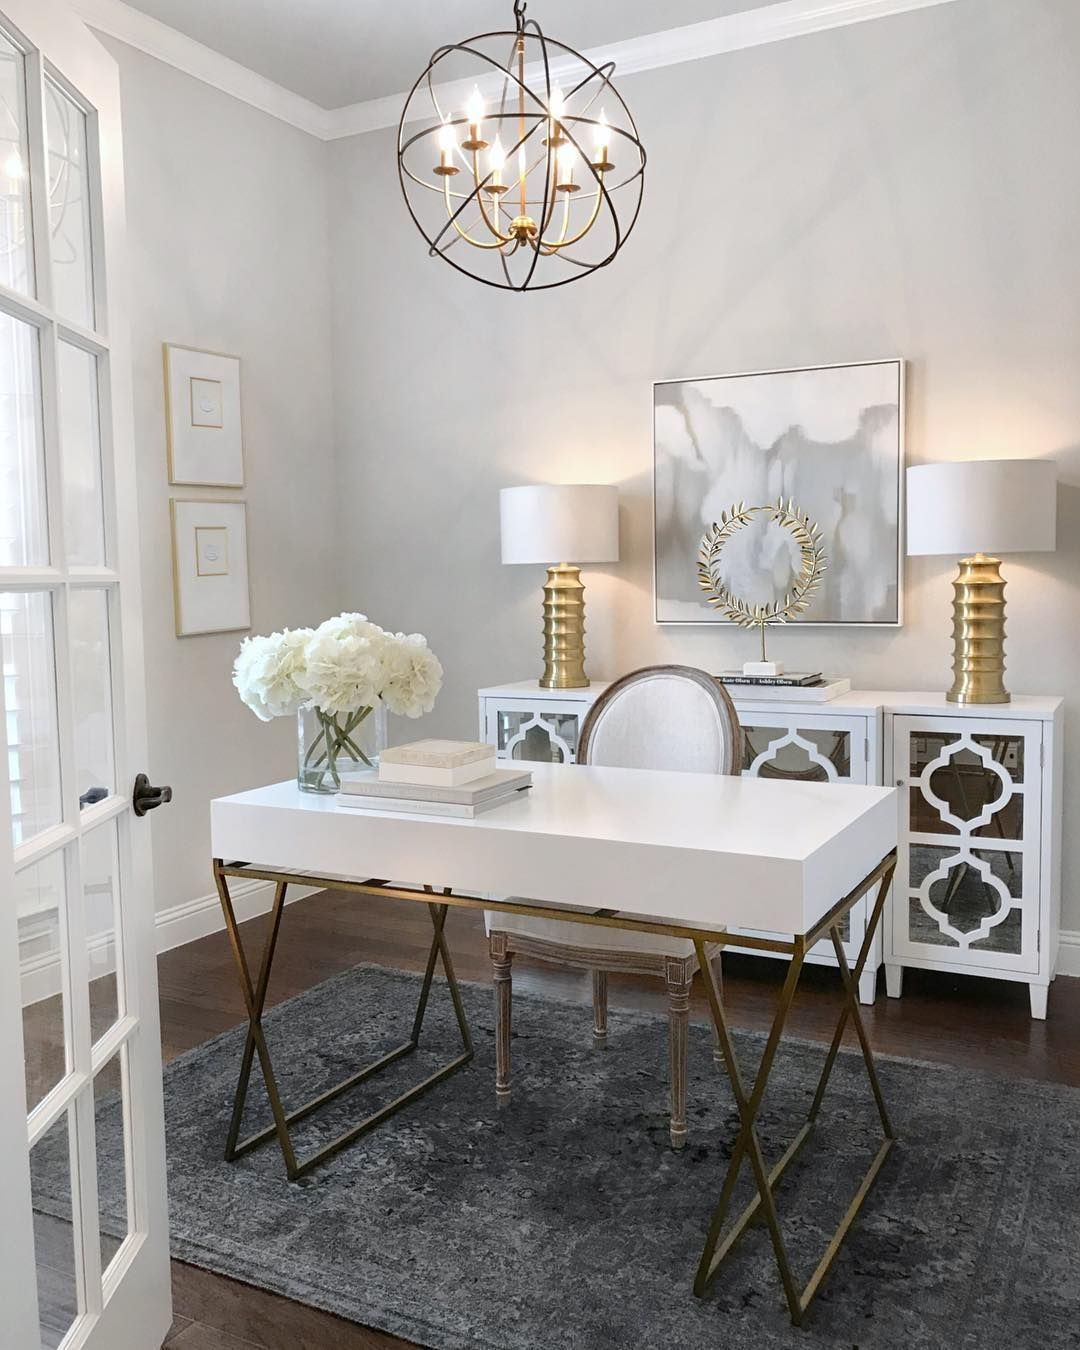 Office Spare Room Inspo In 2020 Home Office Design Home Office Decor Modern Home Office